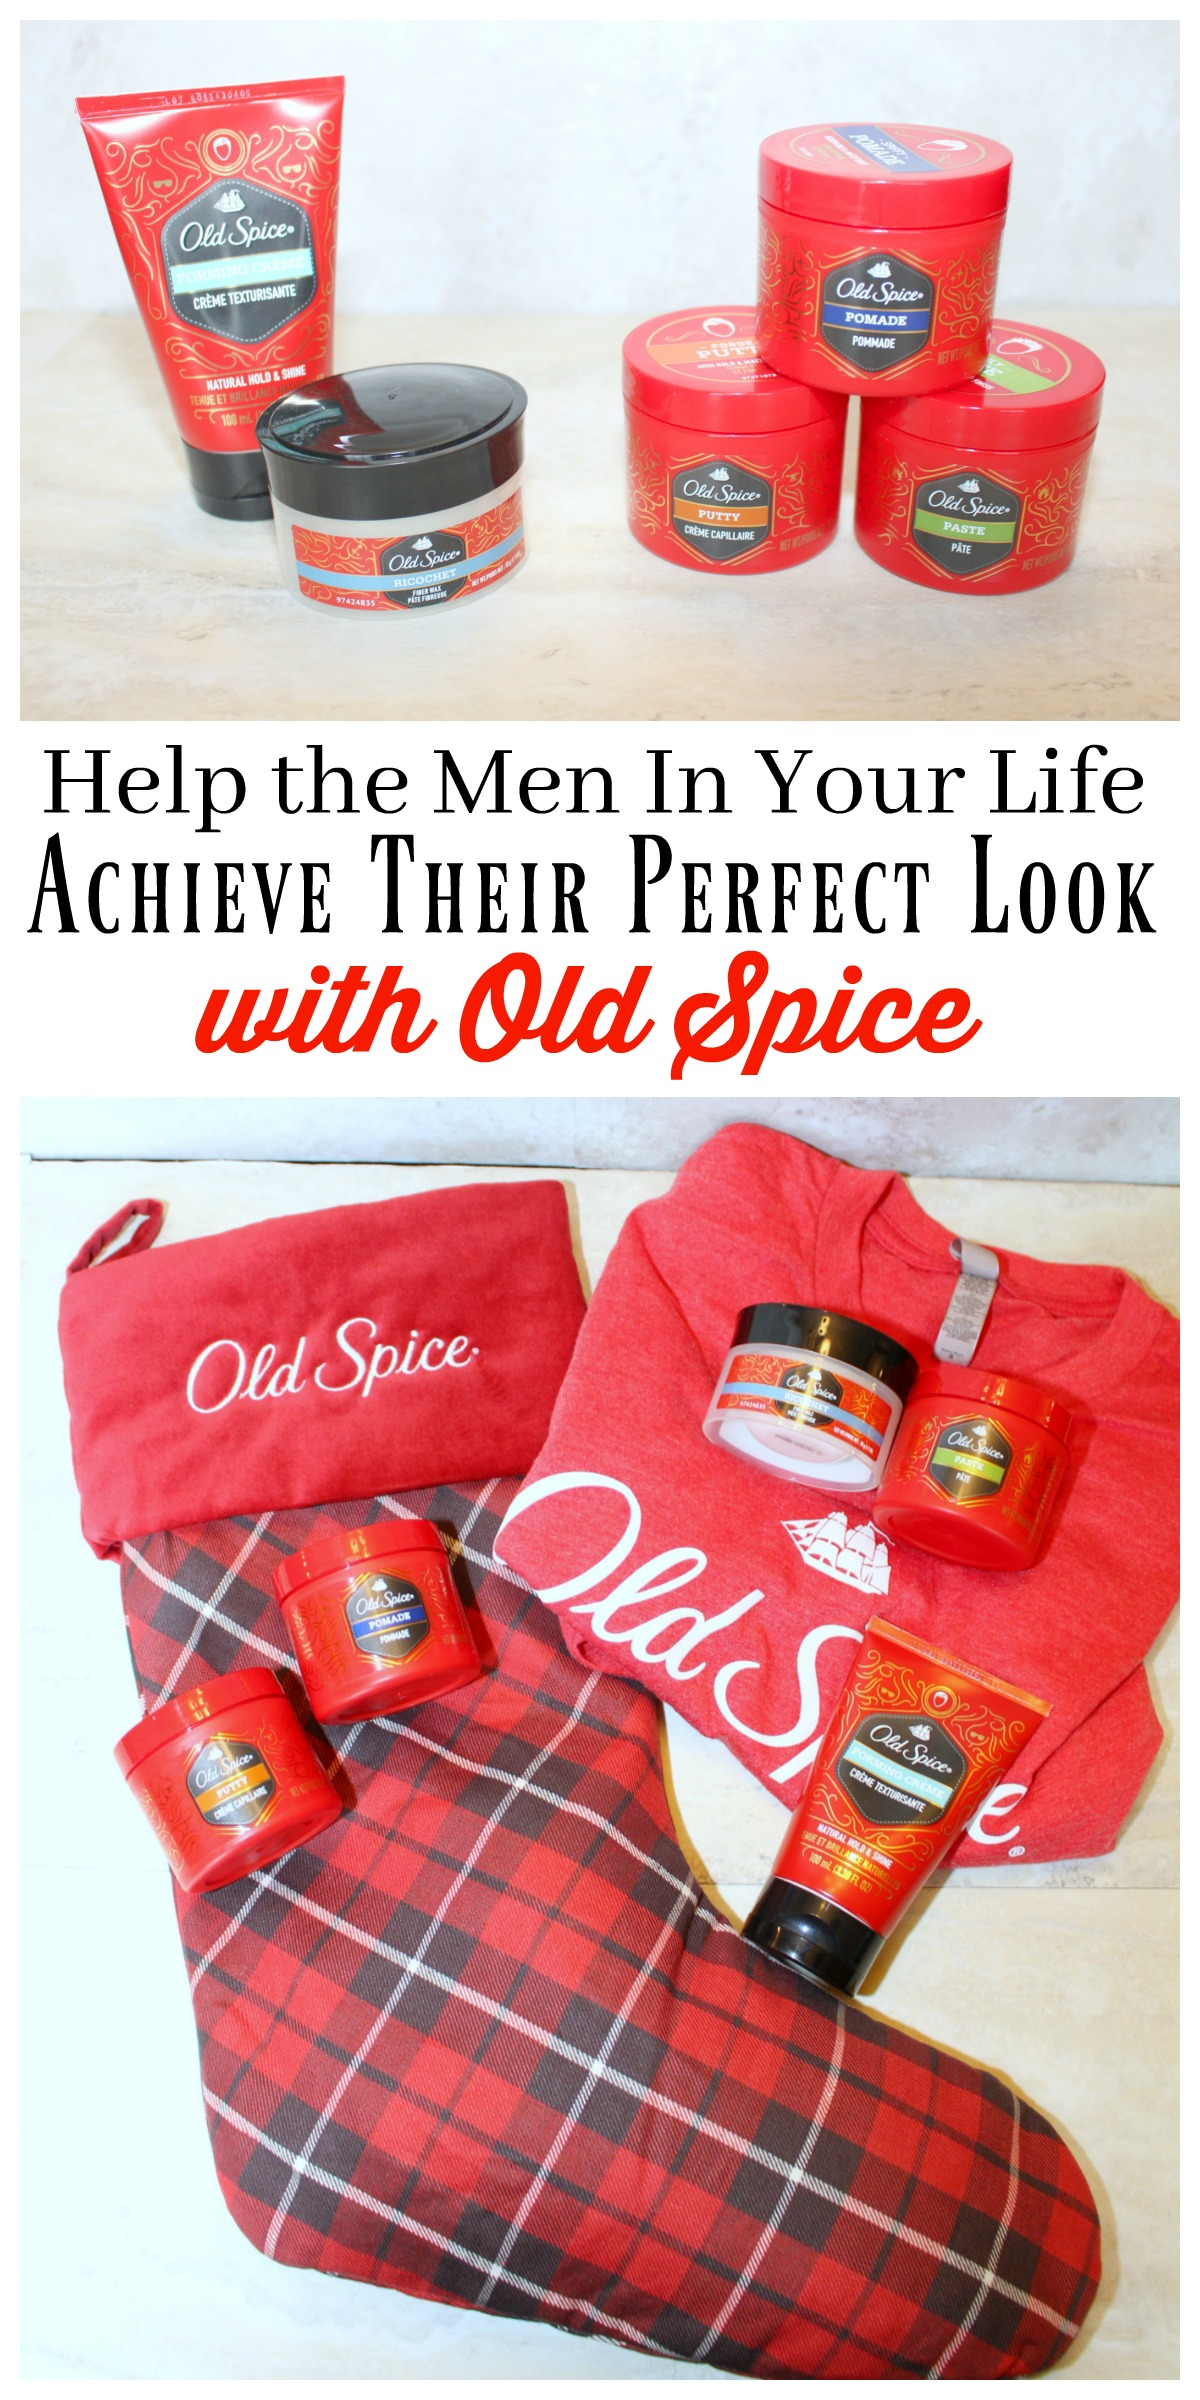 Old Spice Holiday Looks